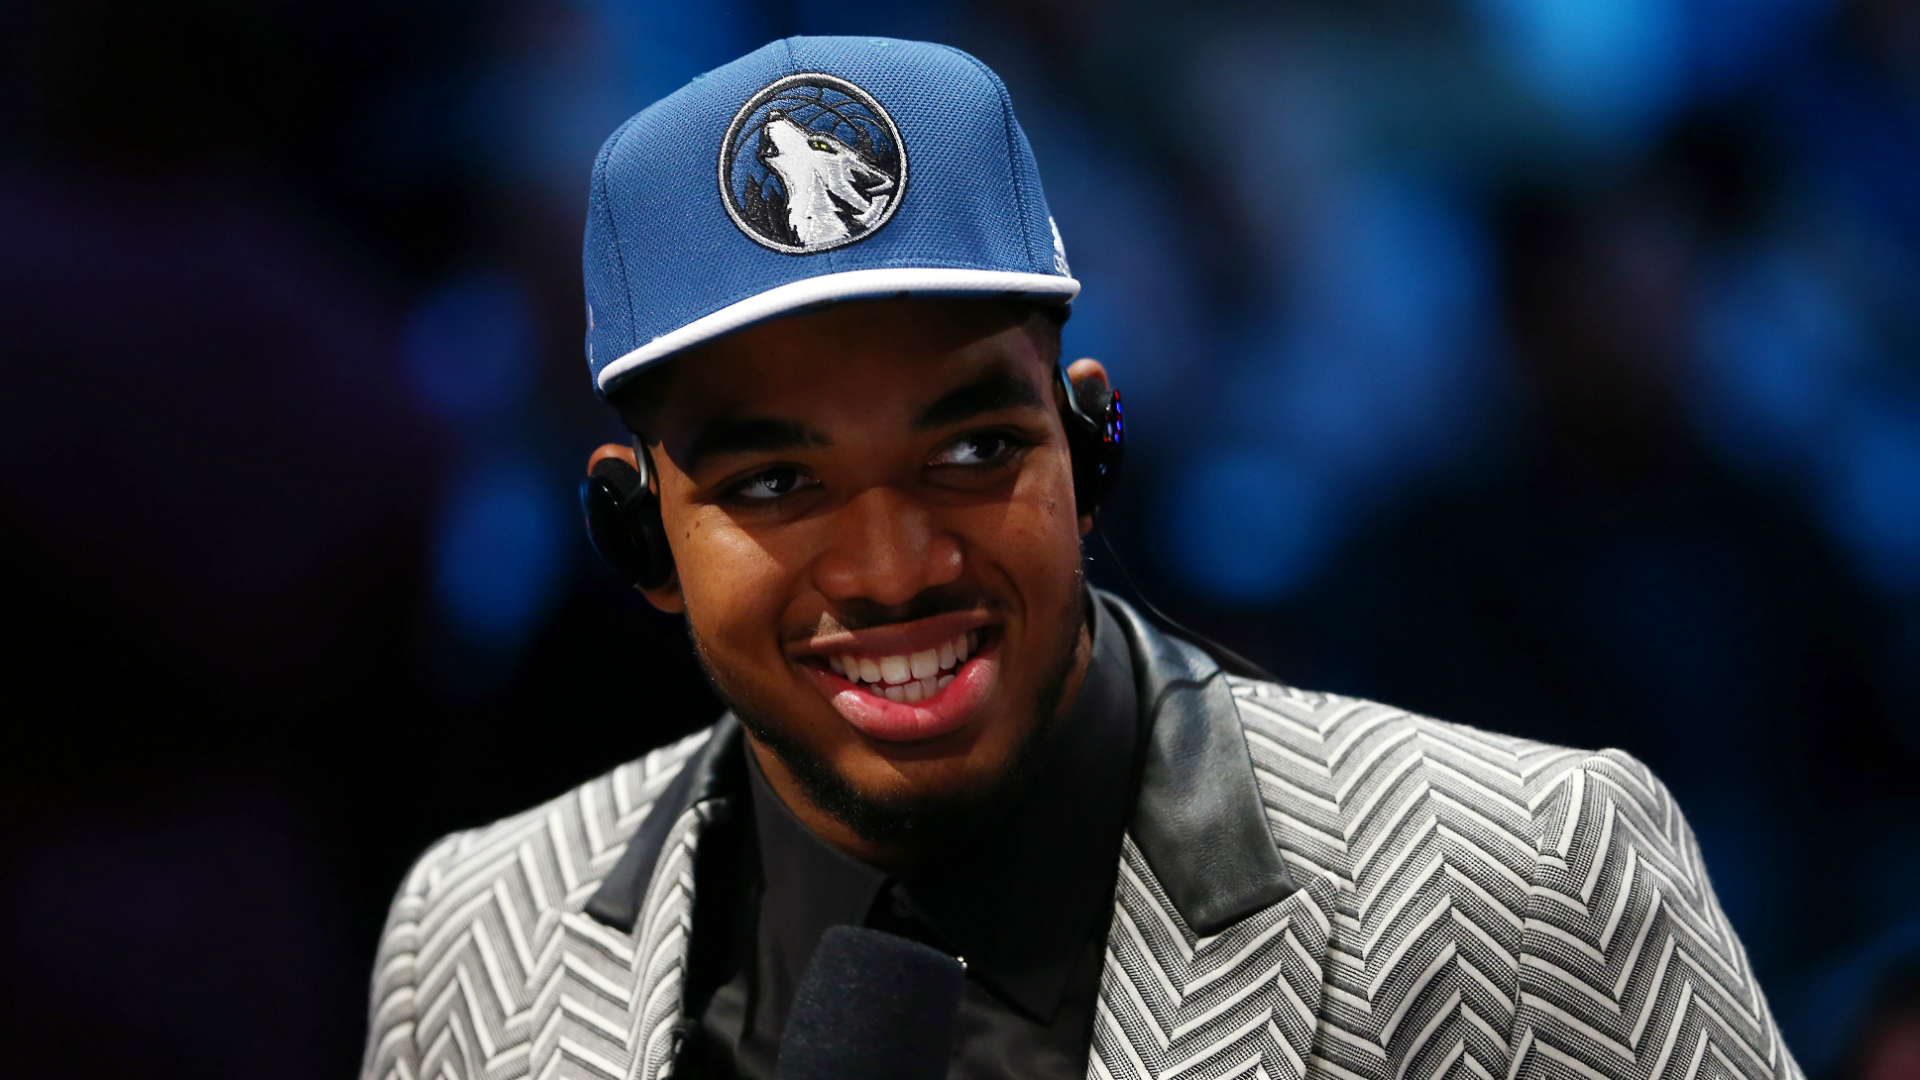 Karl-Anthony Towns plans to be a doctor after two decades in NBA